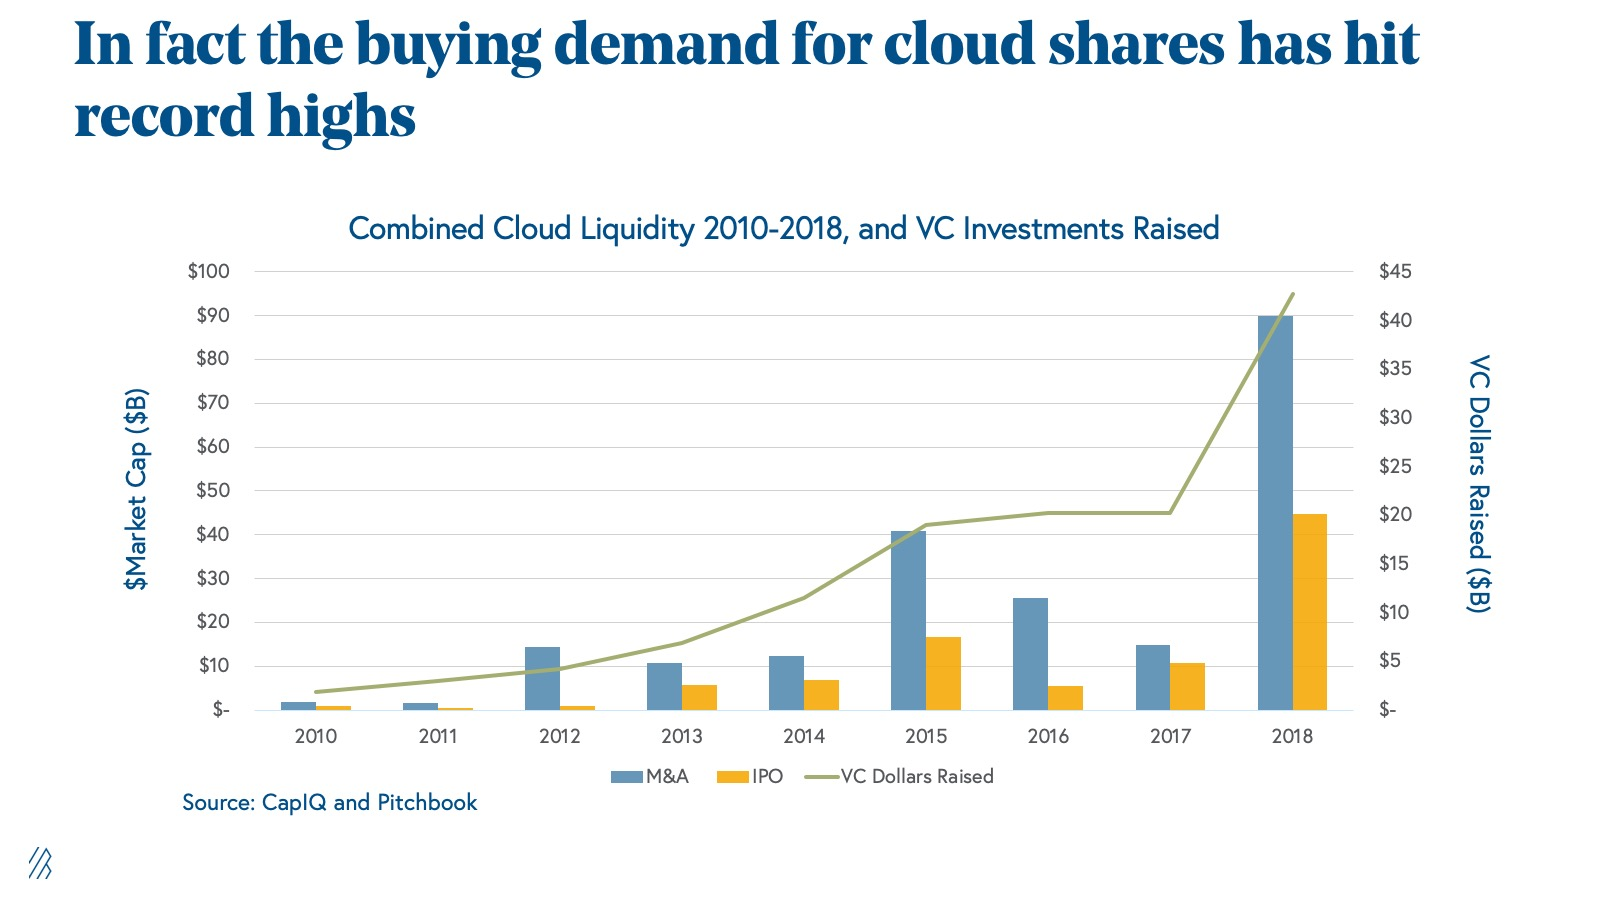 The demand for cloud shares and cloud liquidity hit record highs, outpacing 2015, which was the last record-breaking year.